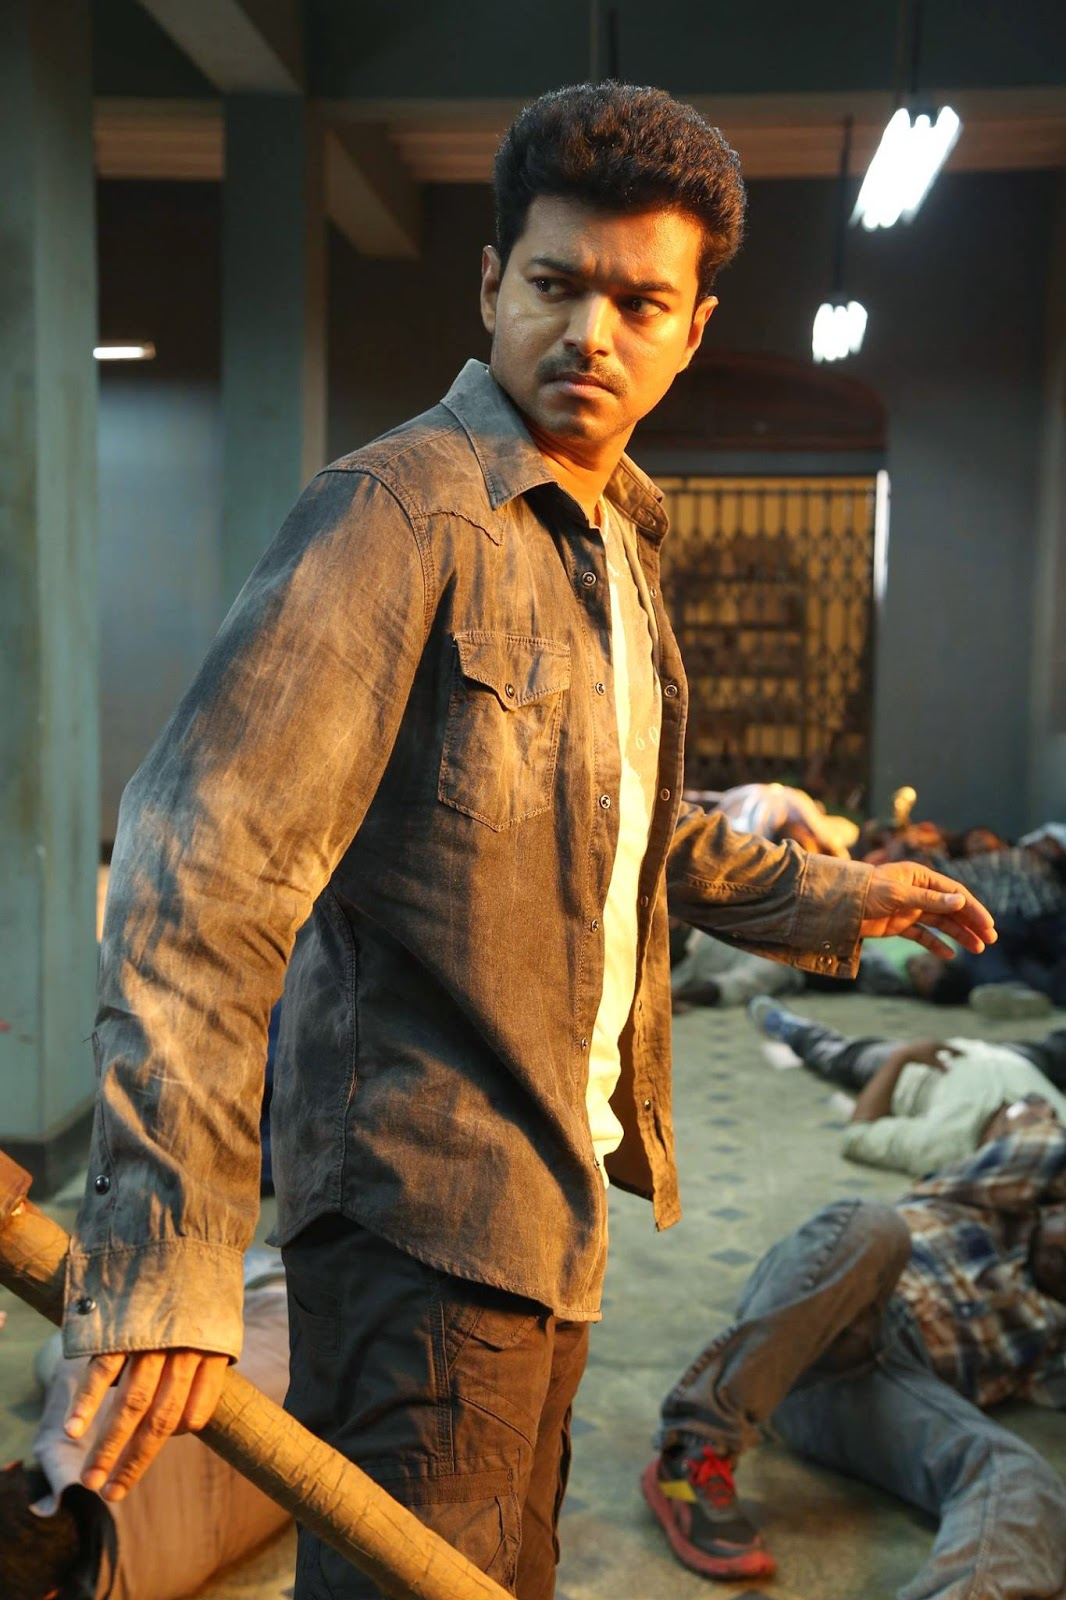 Play an active role in shaping our journalism by becoming a membe r. Vijay in Kaththi Movie - Latest Movie Updates, Movie